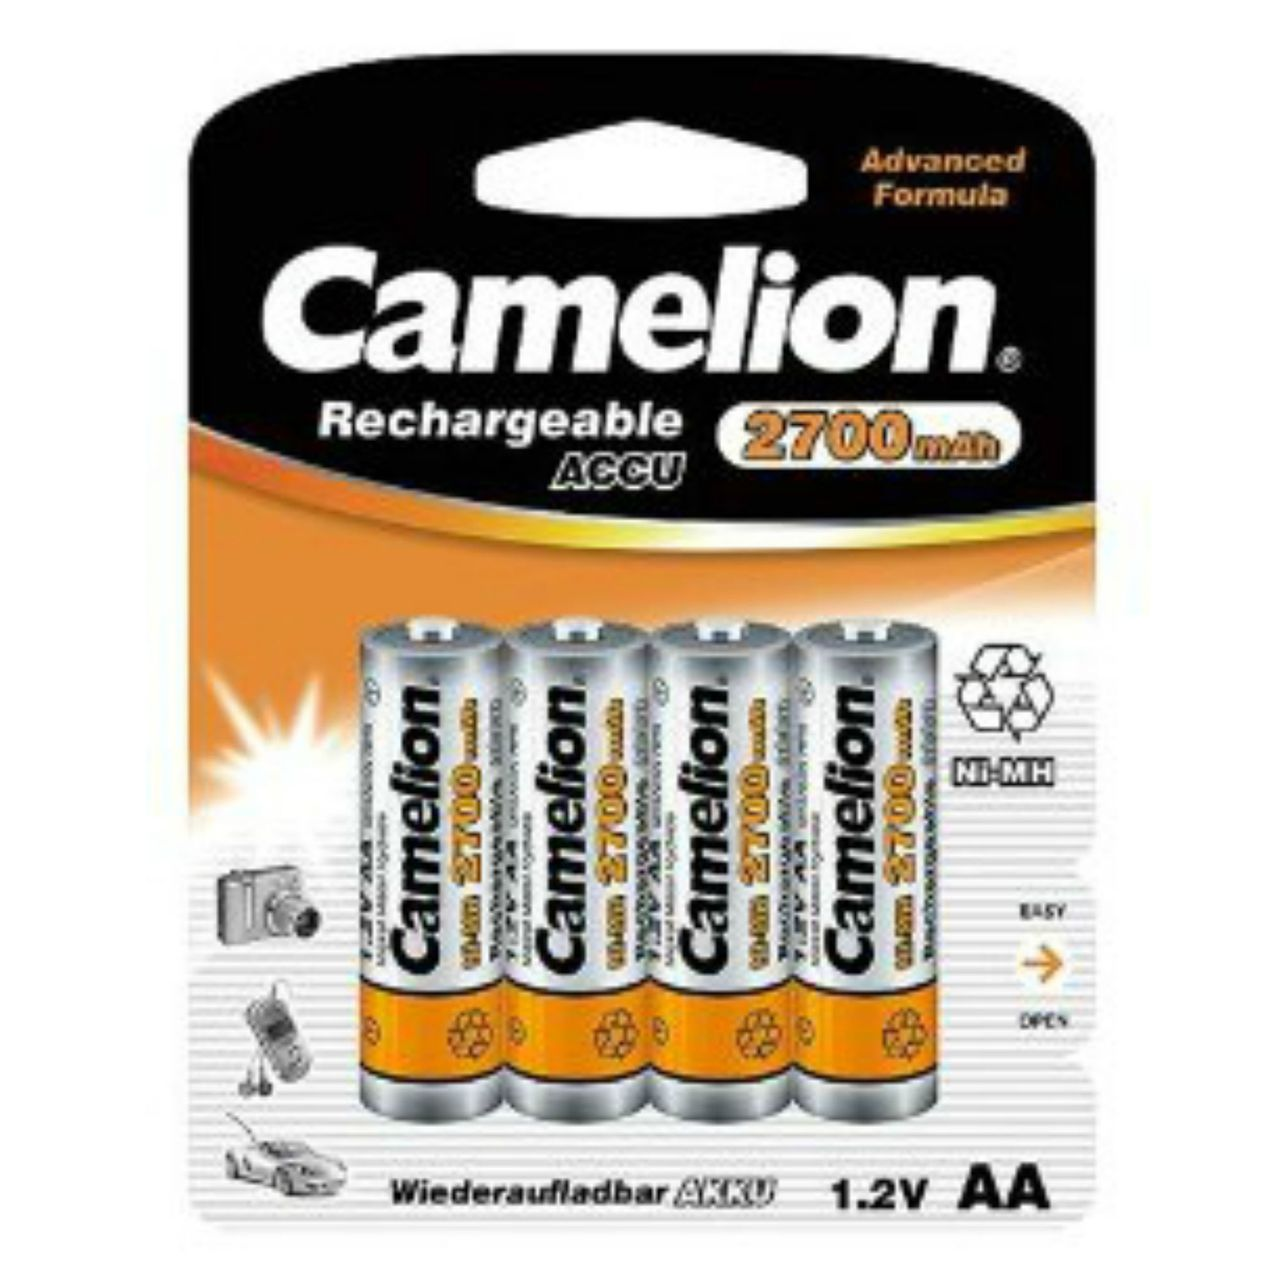 Camelion AA Rechargeable NiMH Batteries 2700mAH 4 Pack Retail + FREE SHIPPING!